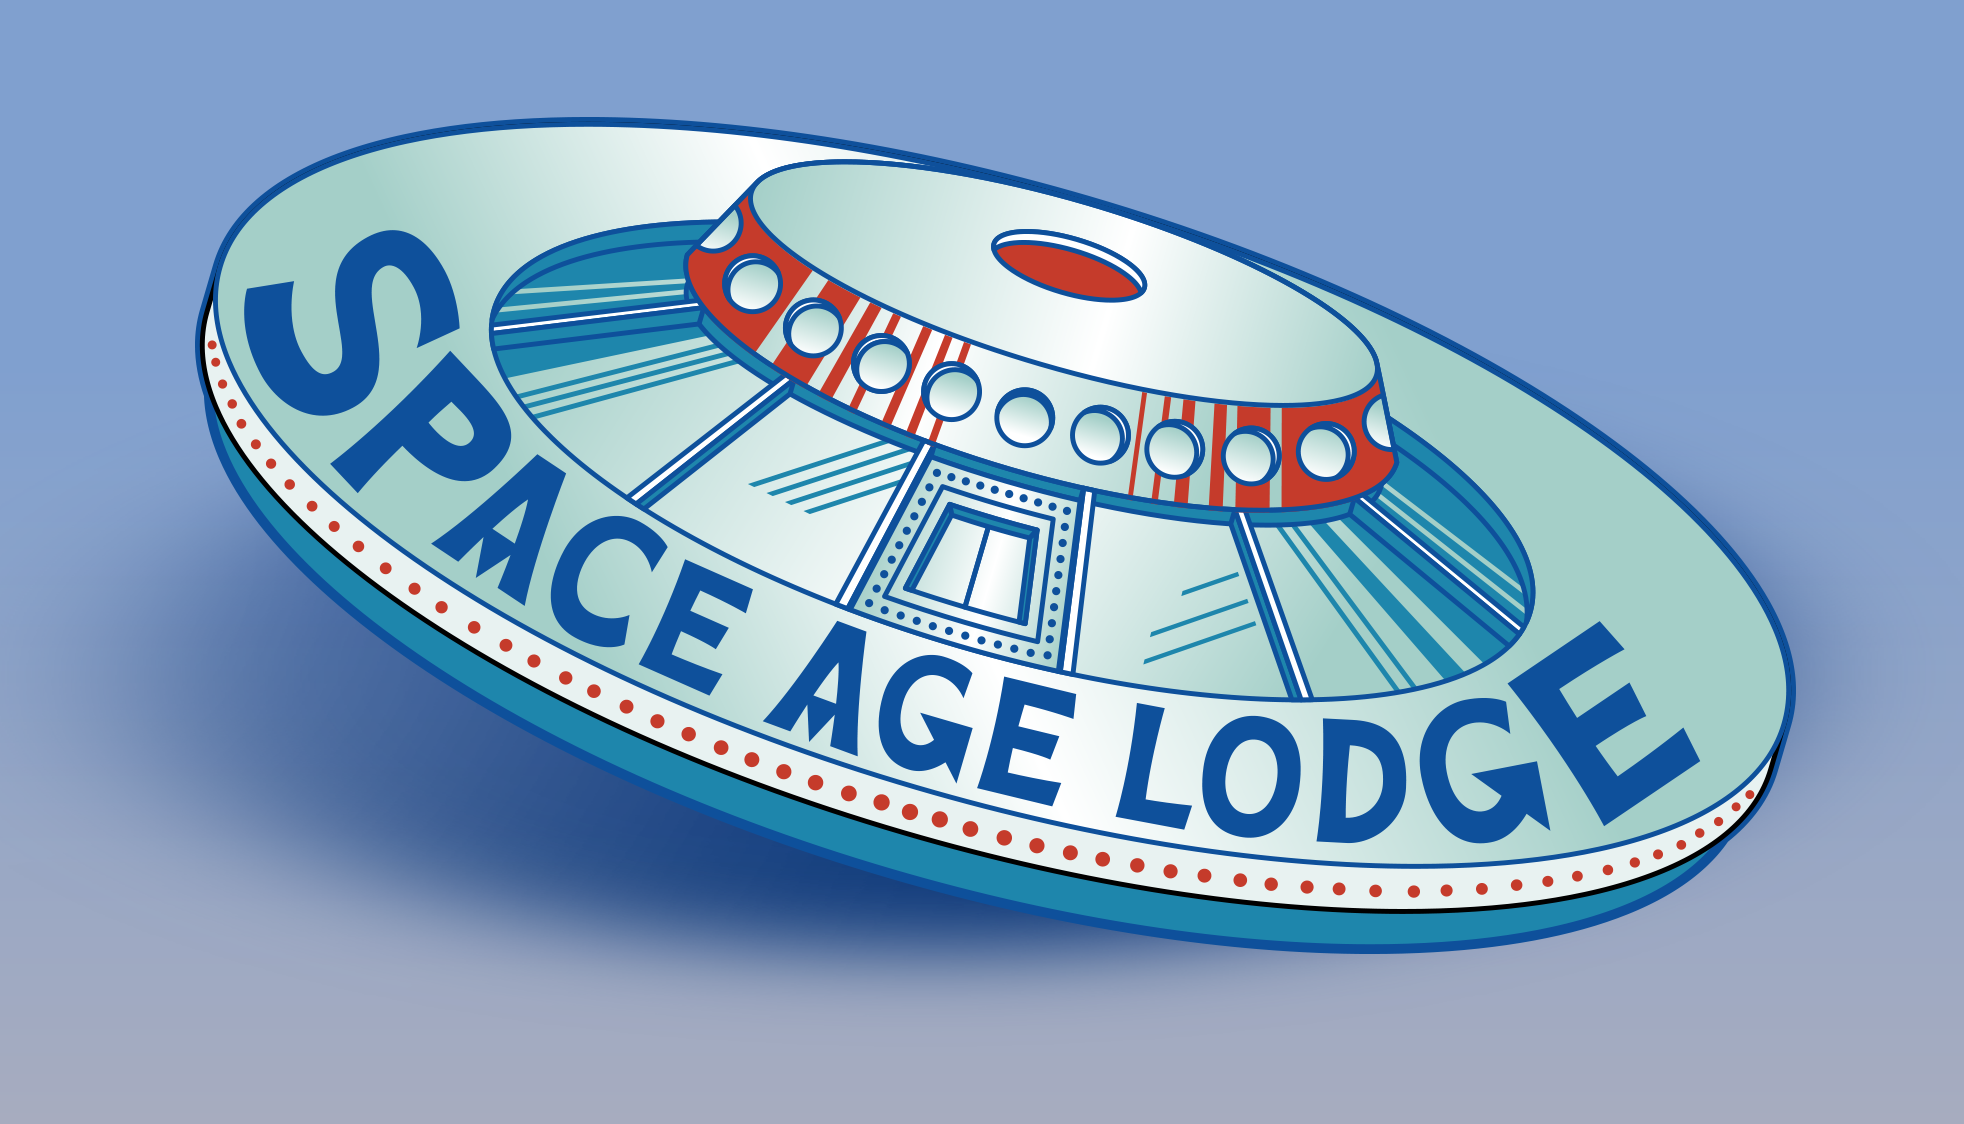 Download Space Age Lodge cool free fonts